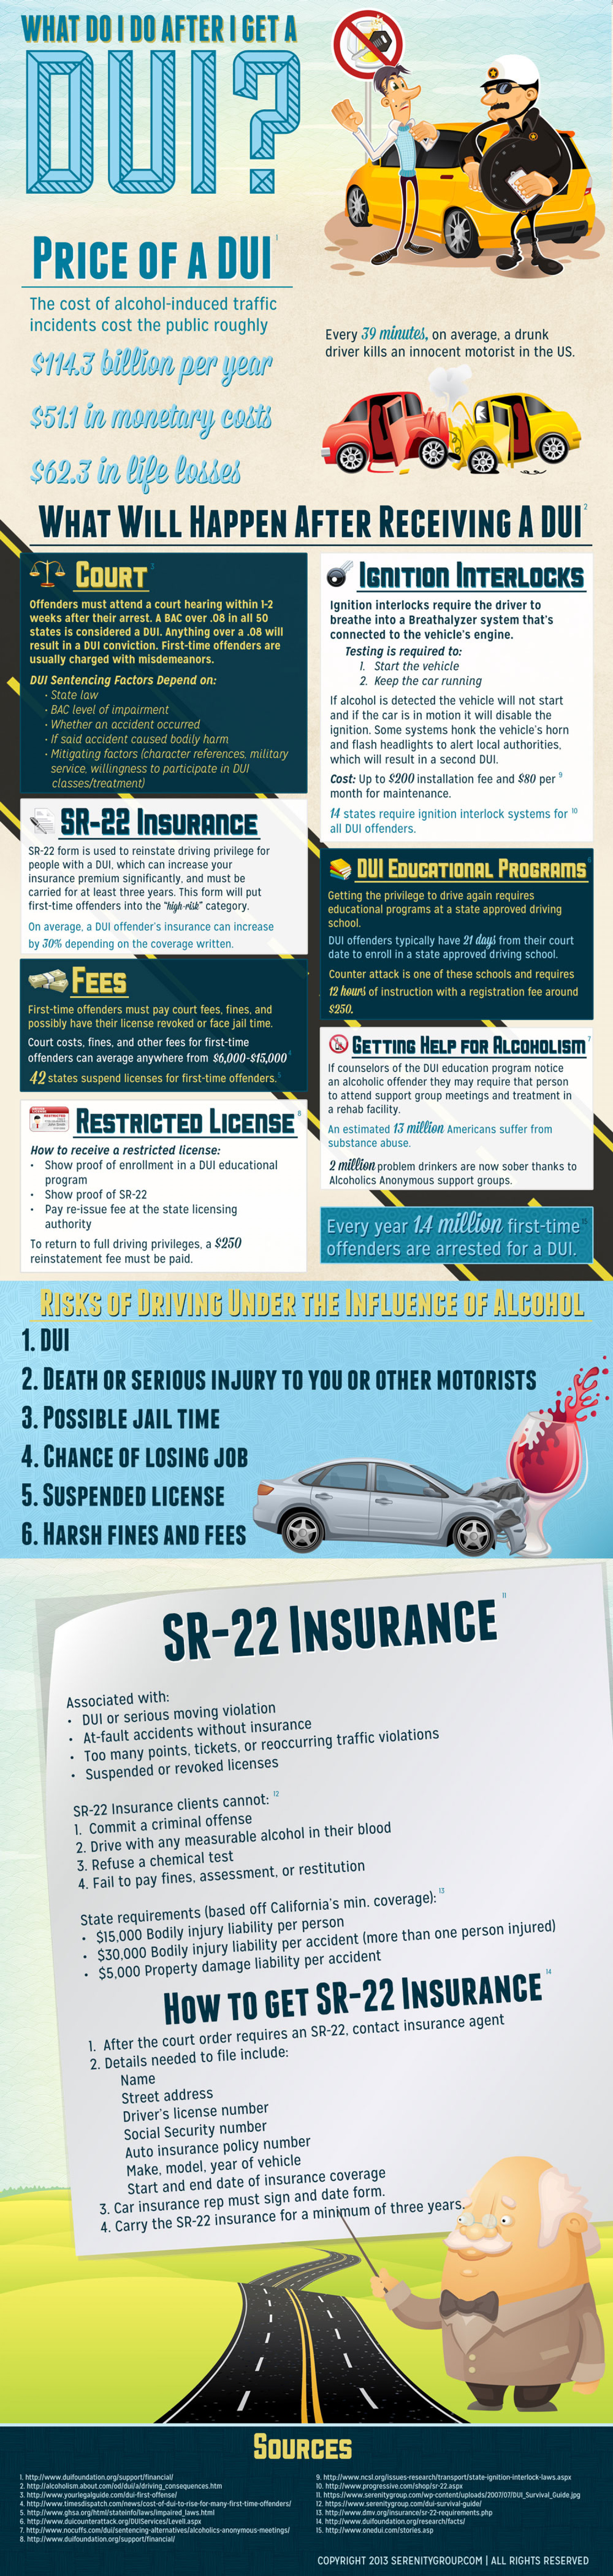 What To Do After DUI Infographic